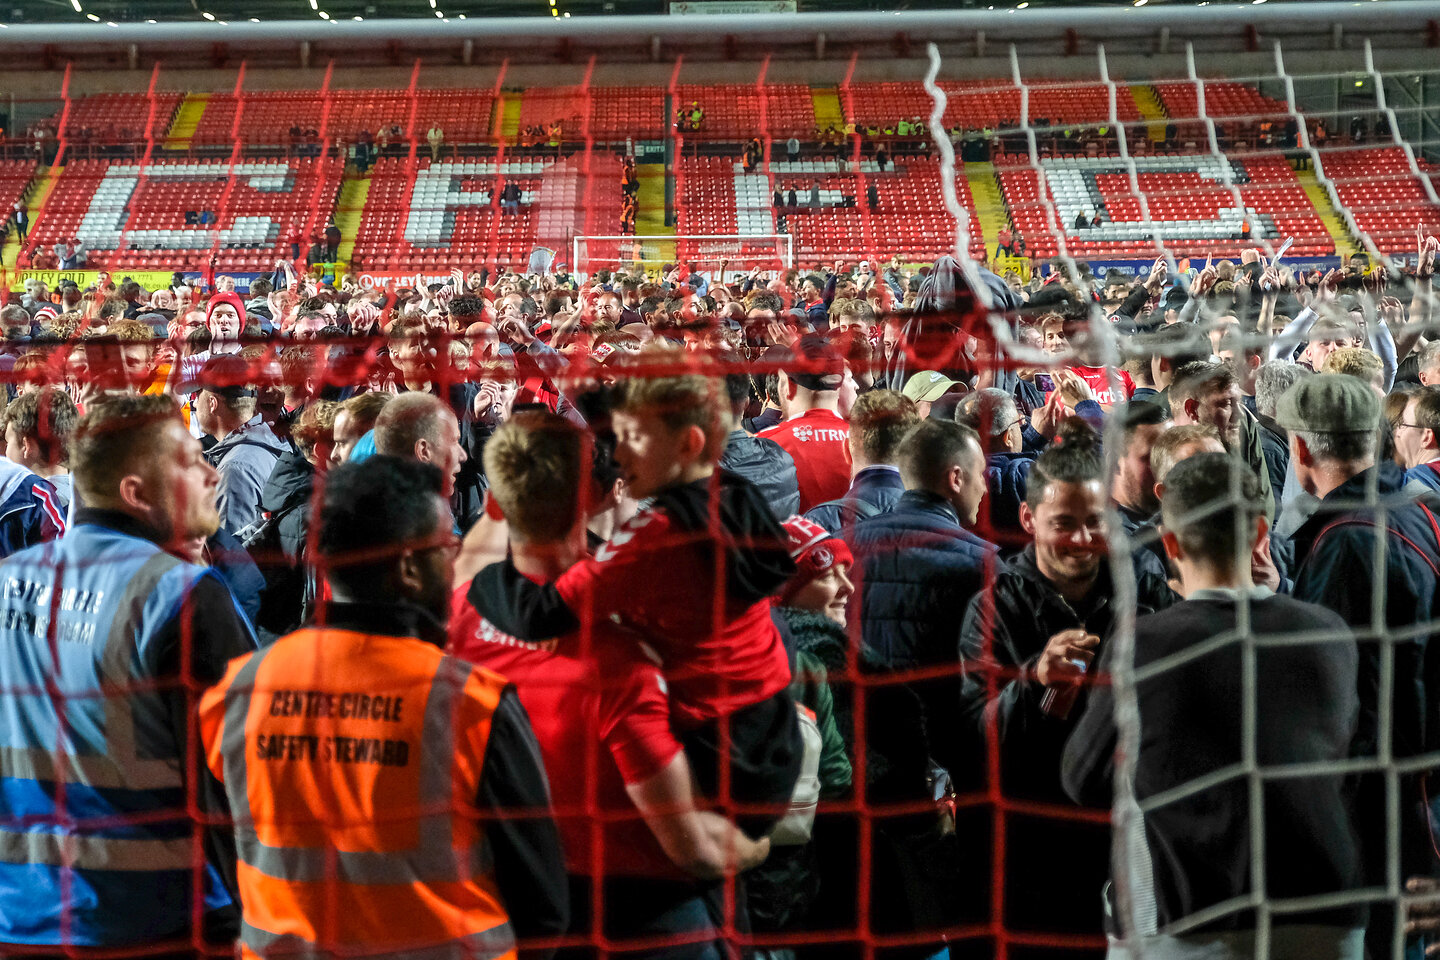 Charlton Vs Doncaster Rovers League One Playoff Semi-Final 17 May 2019